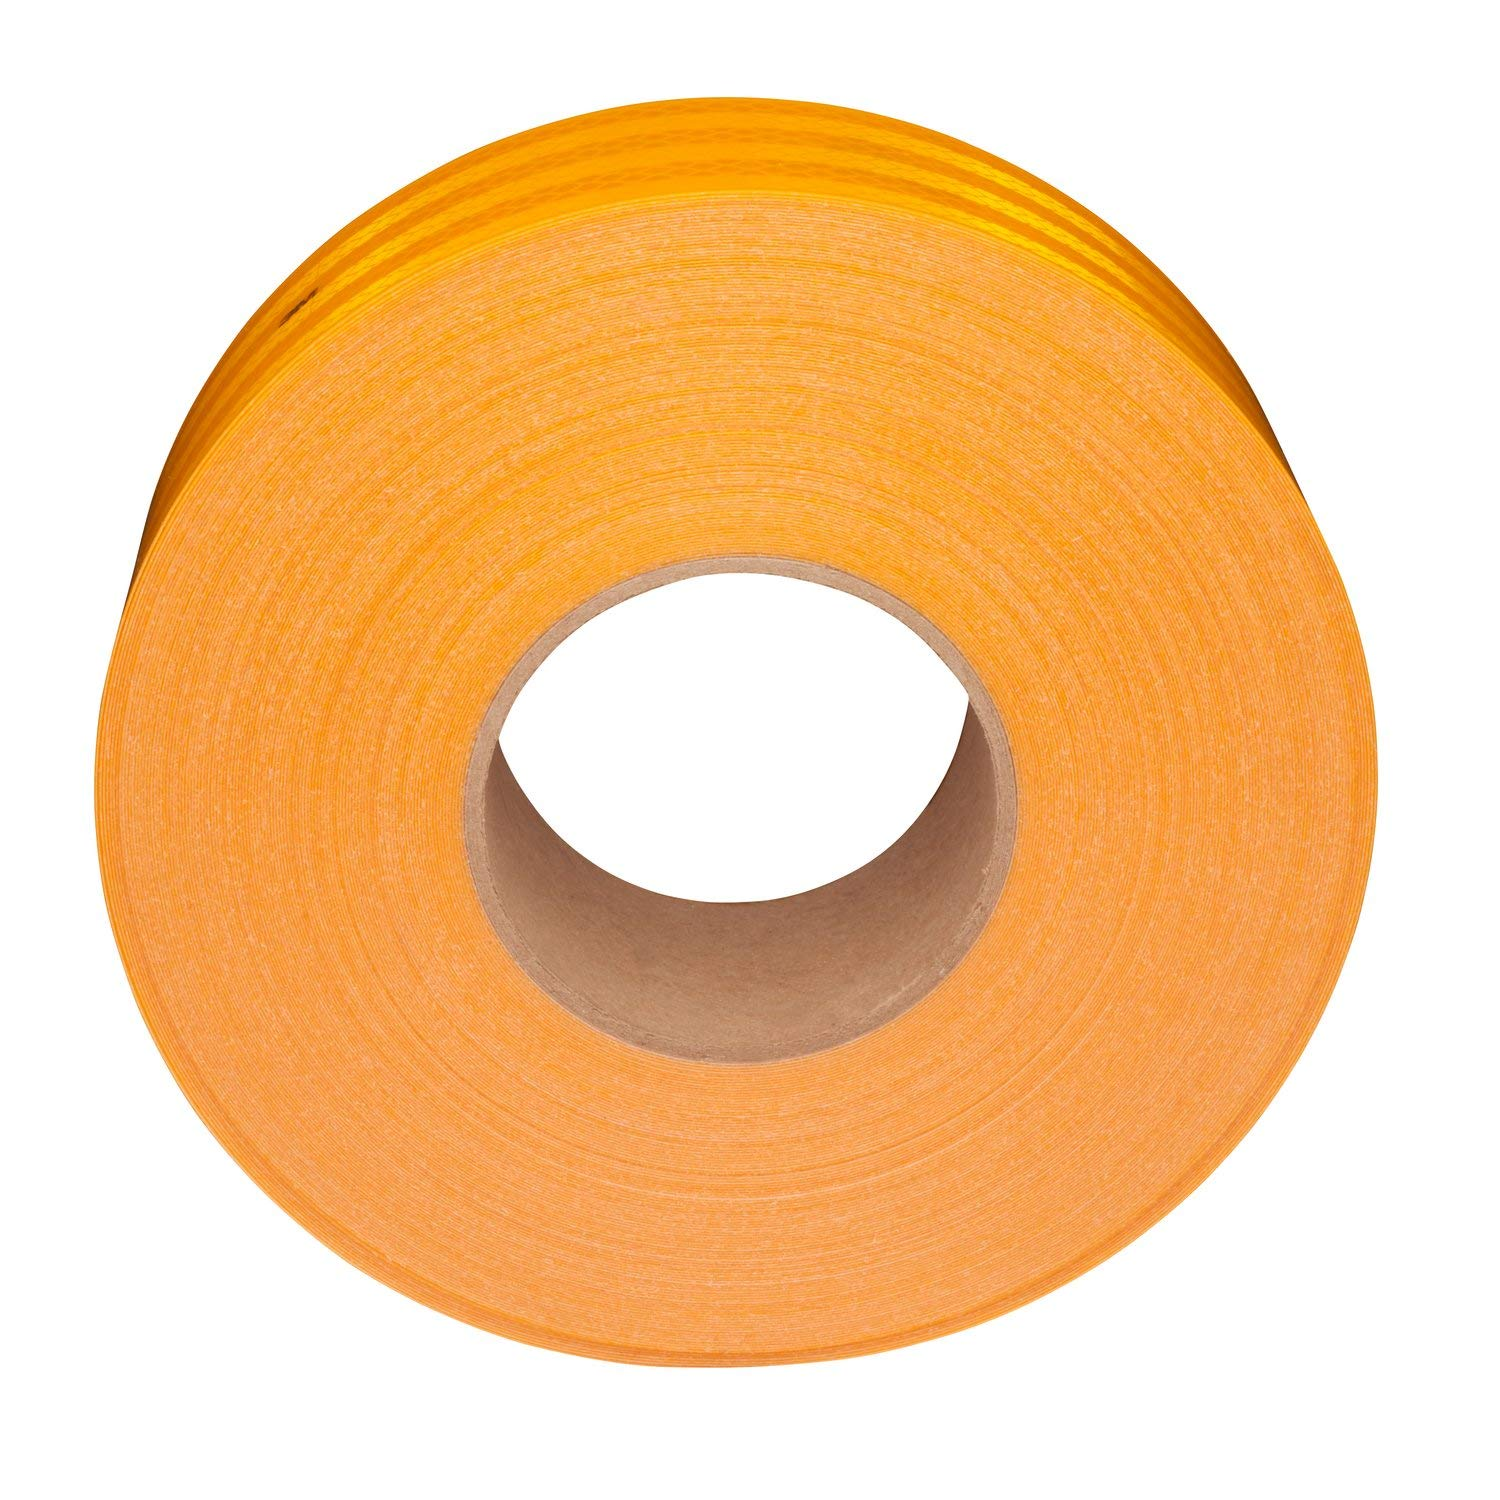 3M 983 High Intensity Yellow Reflective Tape (ECE104 Compliant) (55mm x 1m)